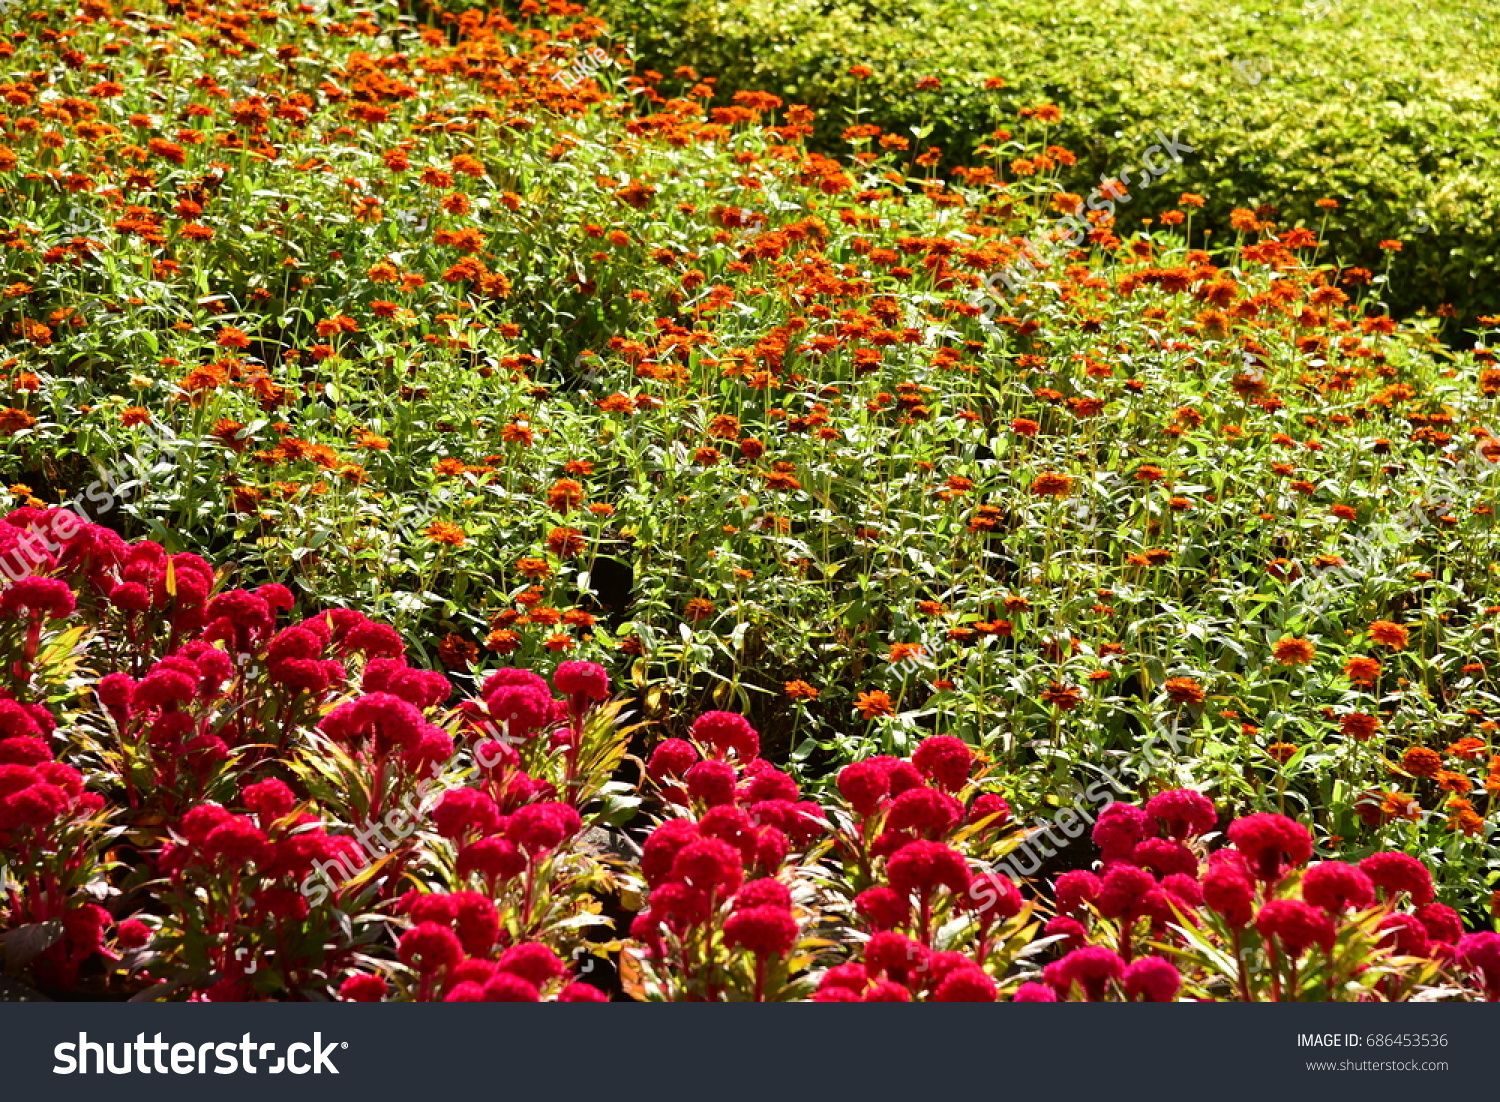 Gardens flowers ornamental plants thailand garden stock photo edit gardens with flowers and ornamental plants thailand garden beautiful garden izmirmasajfo